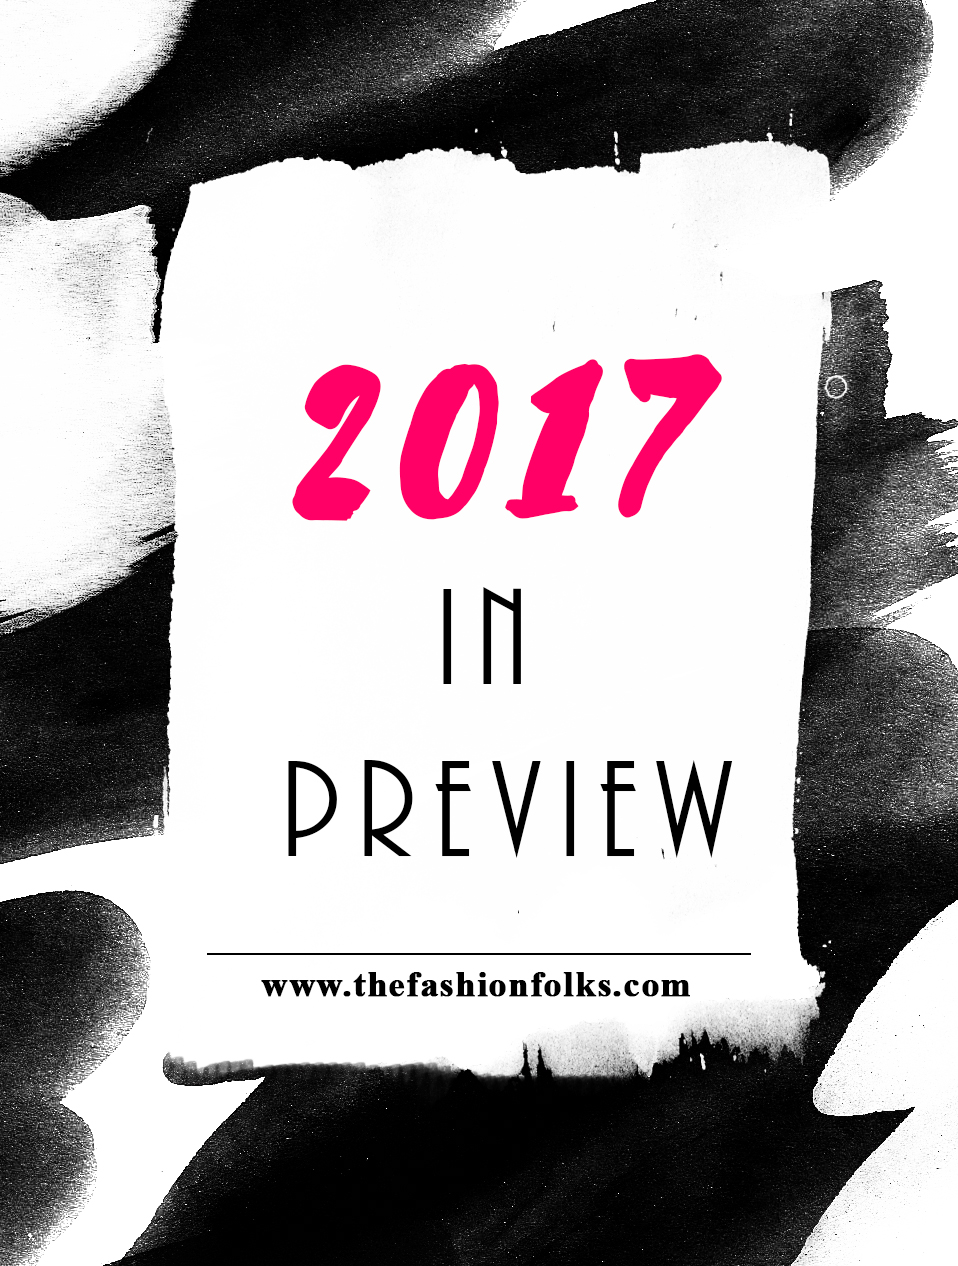 2017 in preview with fashion trends 2017, beauty trends 2017 + makeup and fashion inspiration | The Fashion Folks